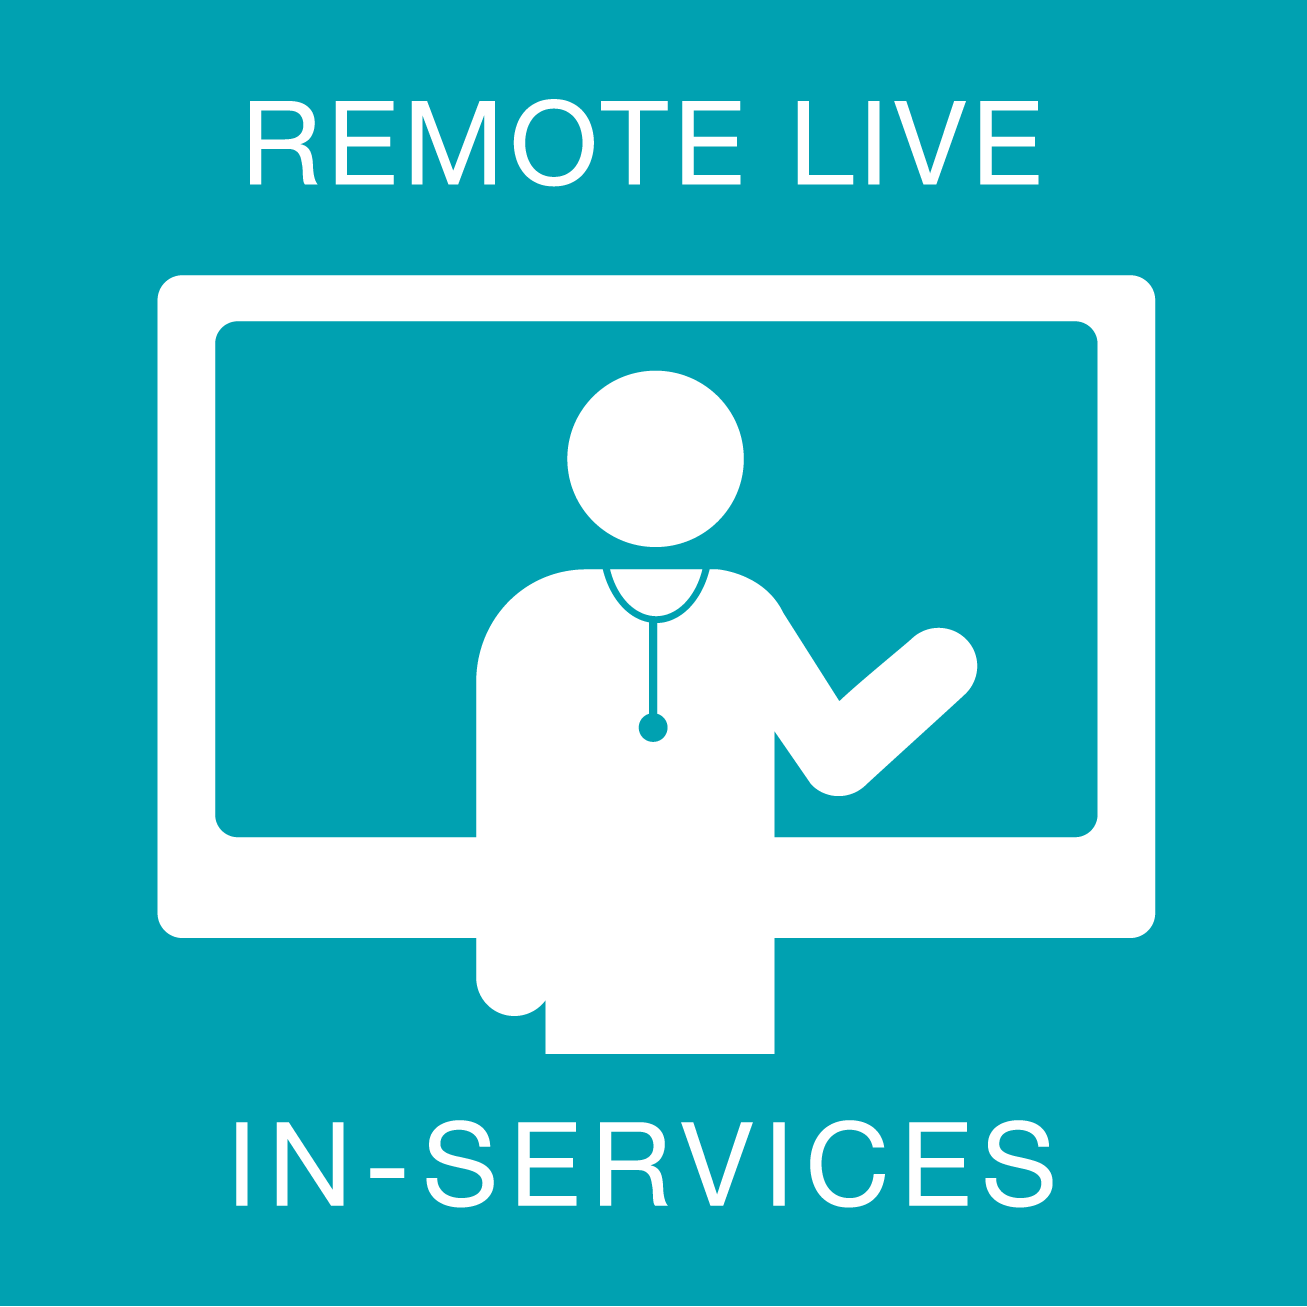 ceu events remote live inservices